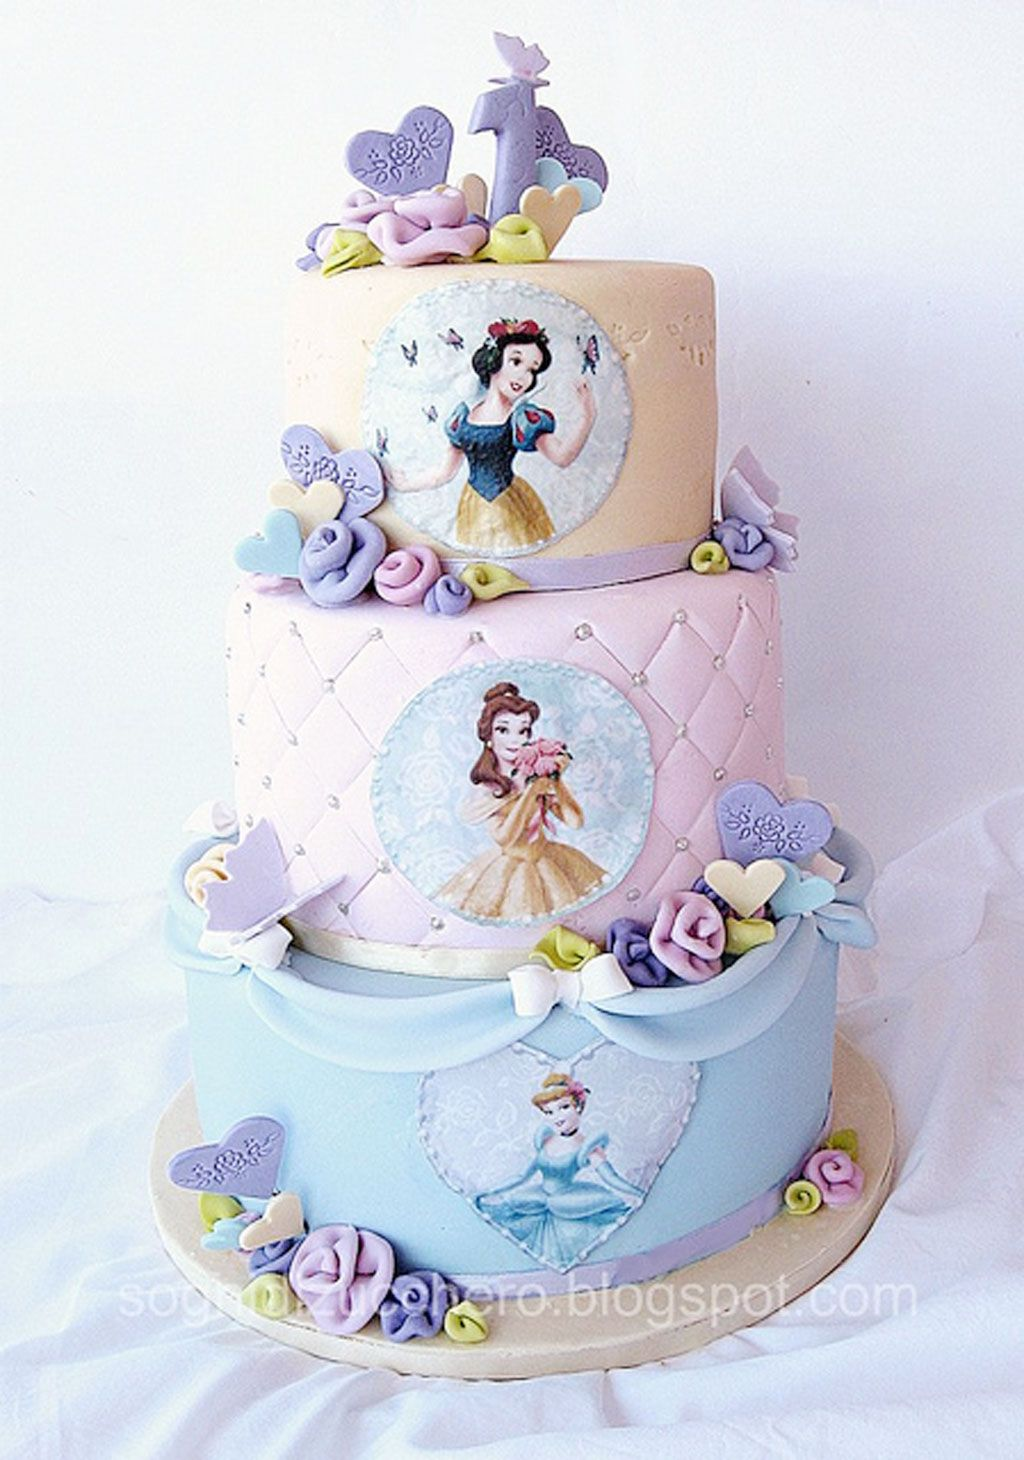 Disney Princess Birthday Cake Pictures Picture In Cakepins